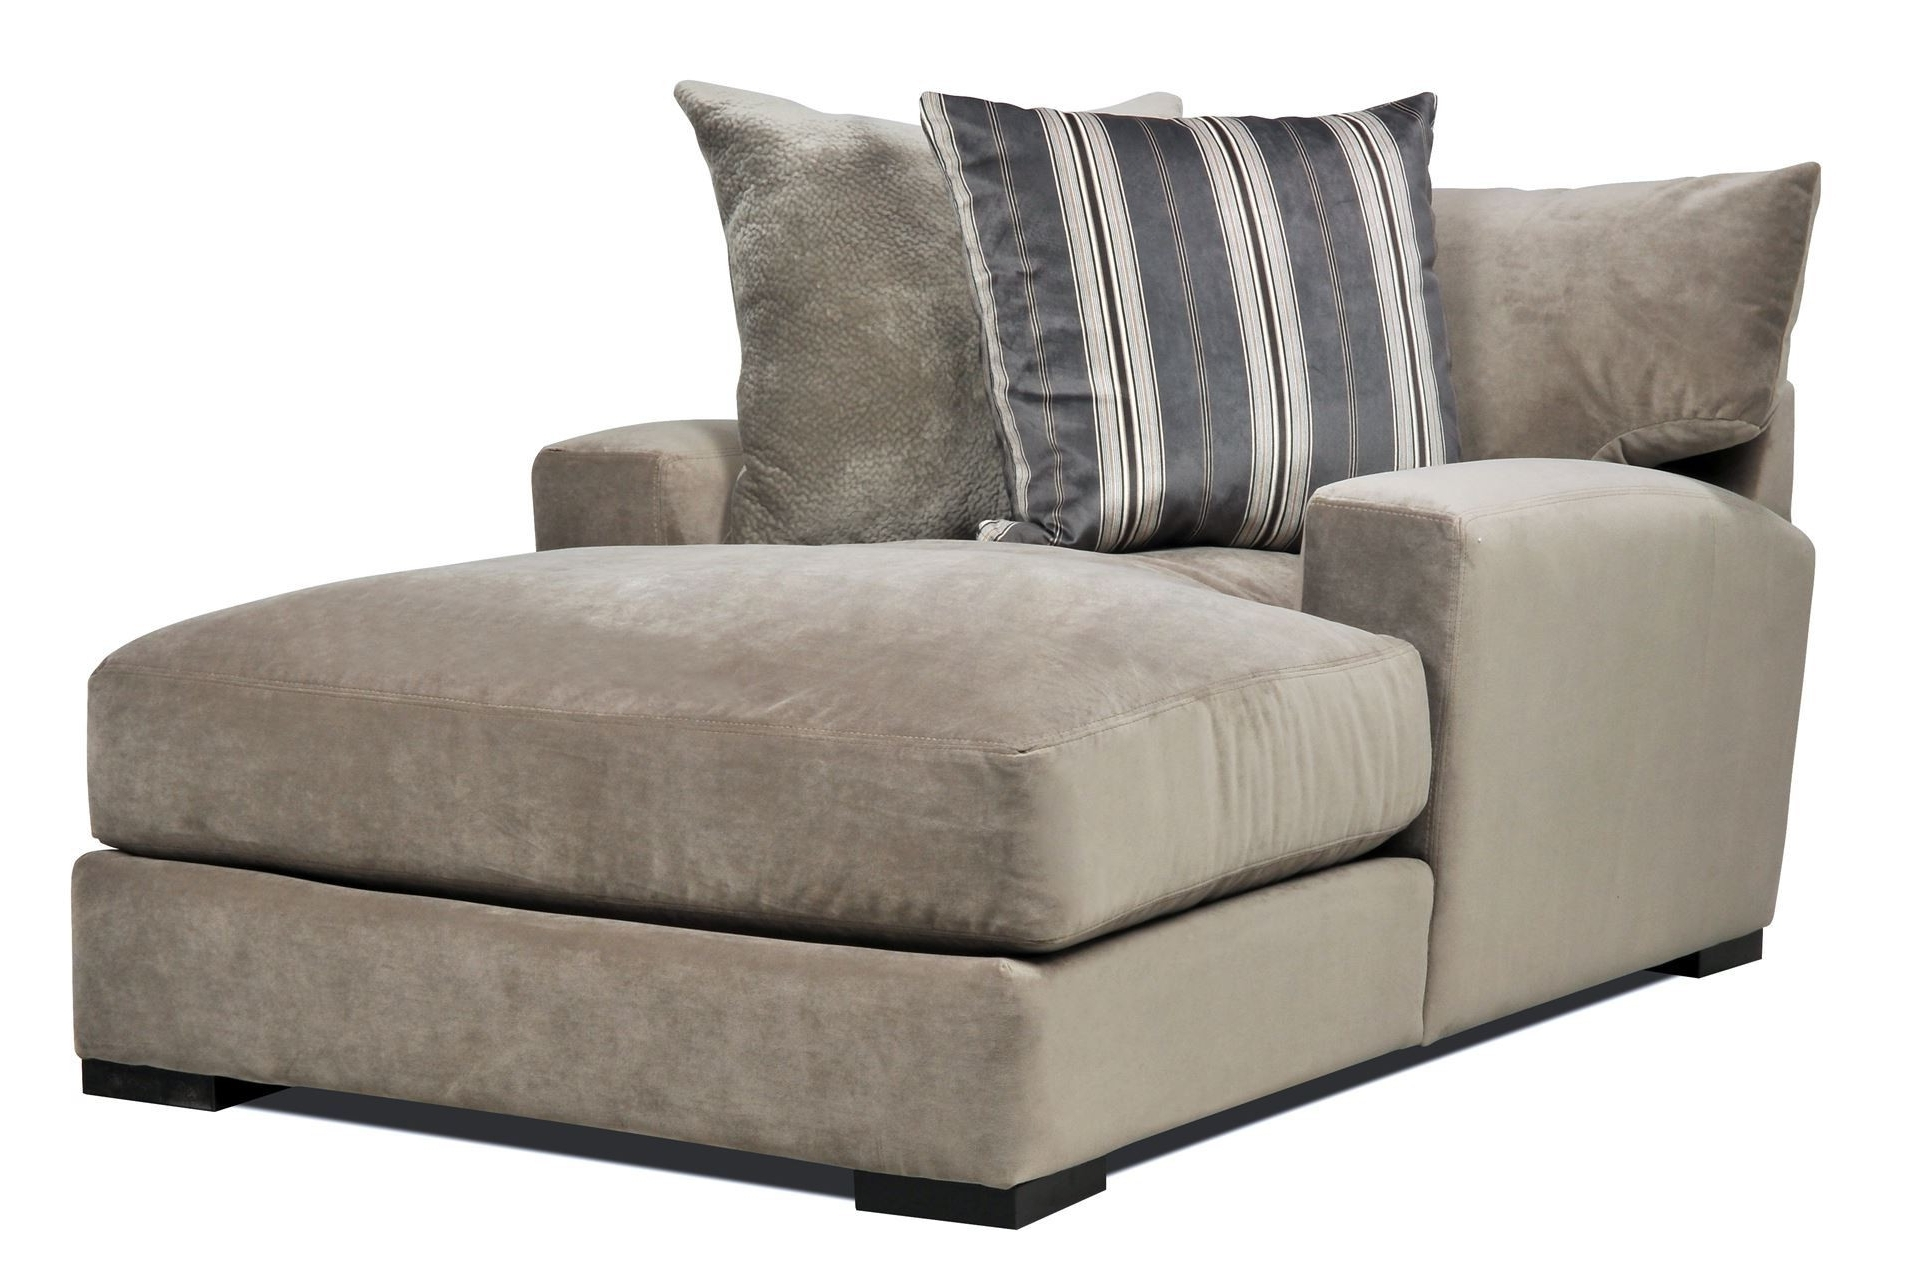 Best And Newest One Arm Loveseat New Home Design Clubmona Wonderful Oversized With Chaise Lounge Chairs With Arms (View 4 of 15)